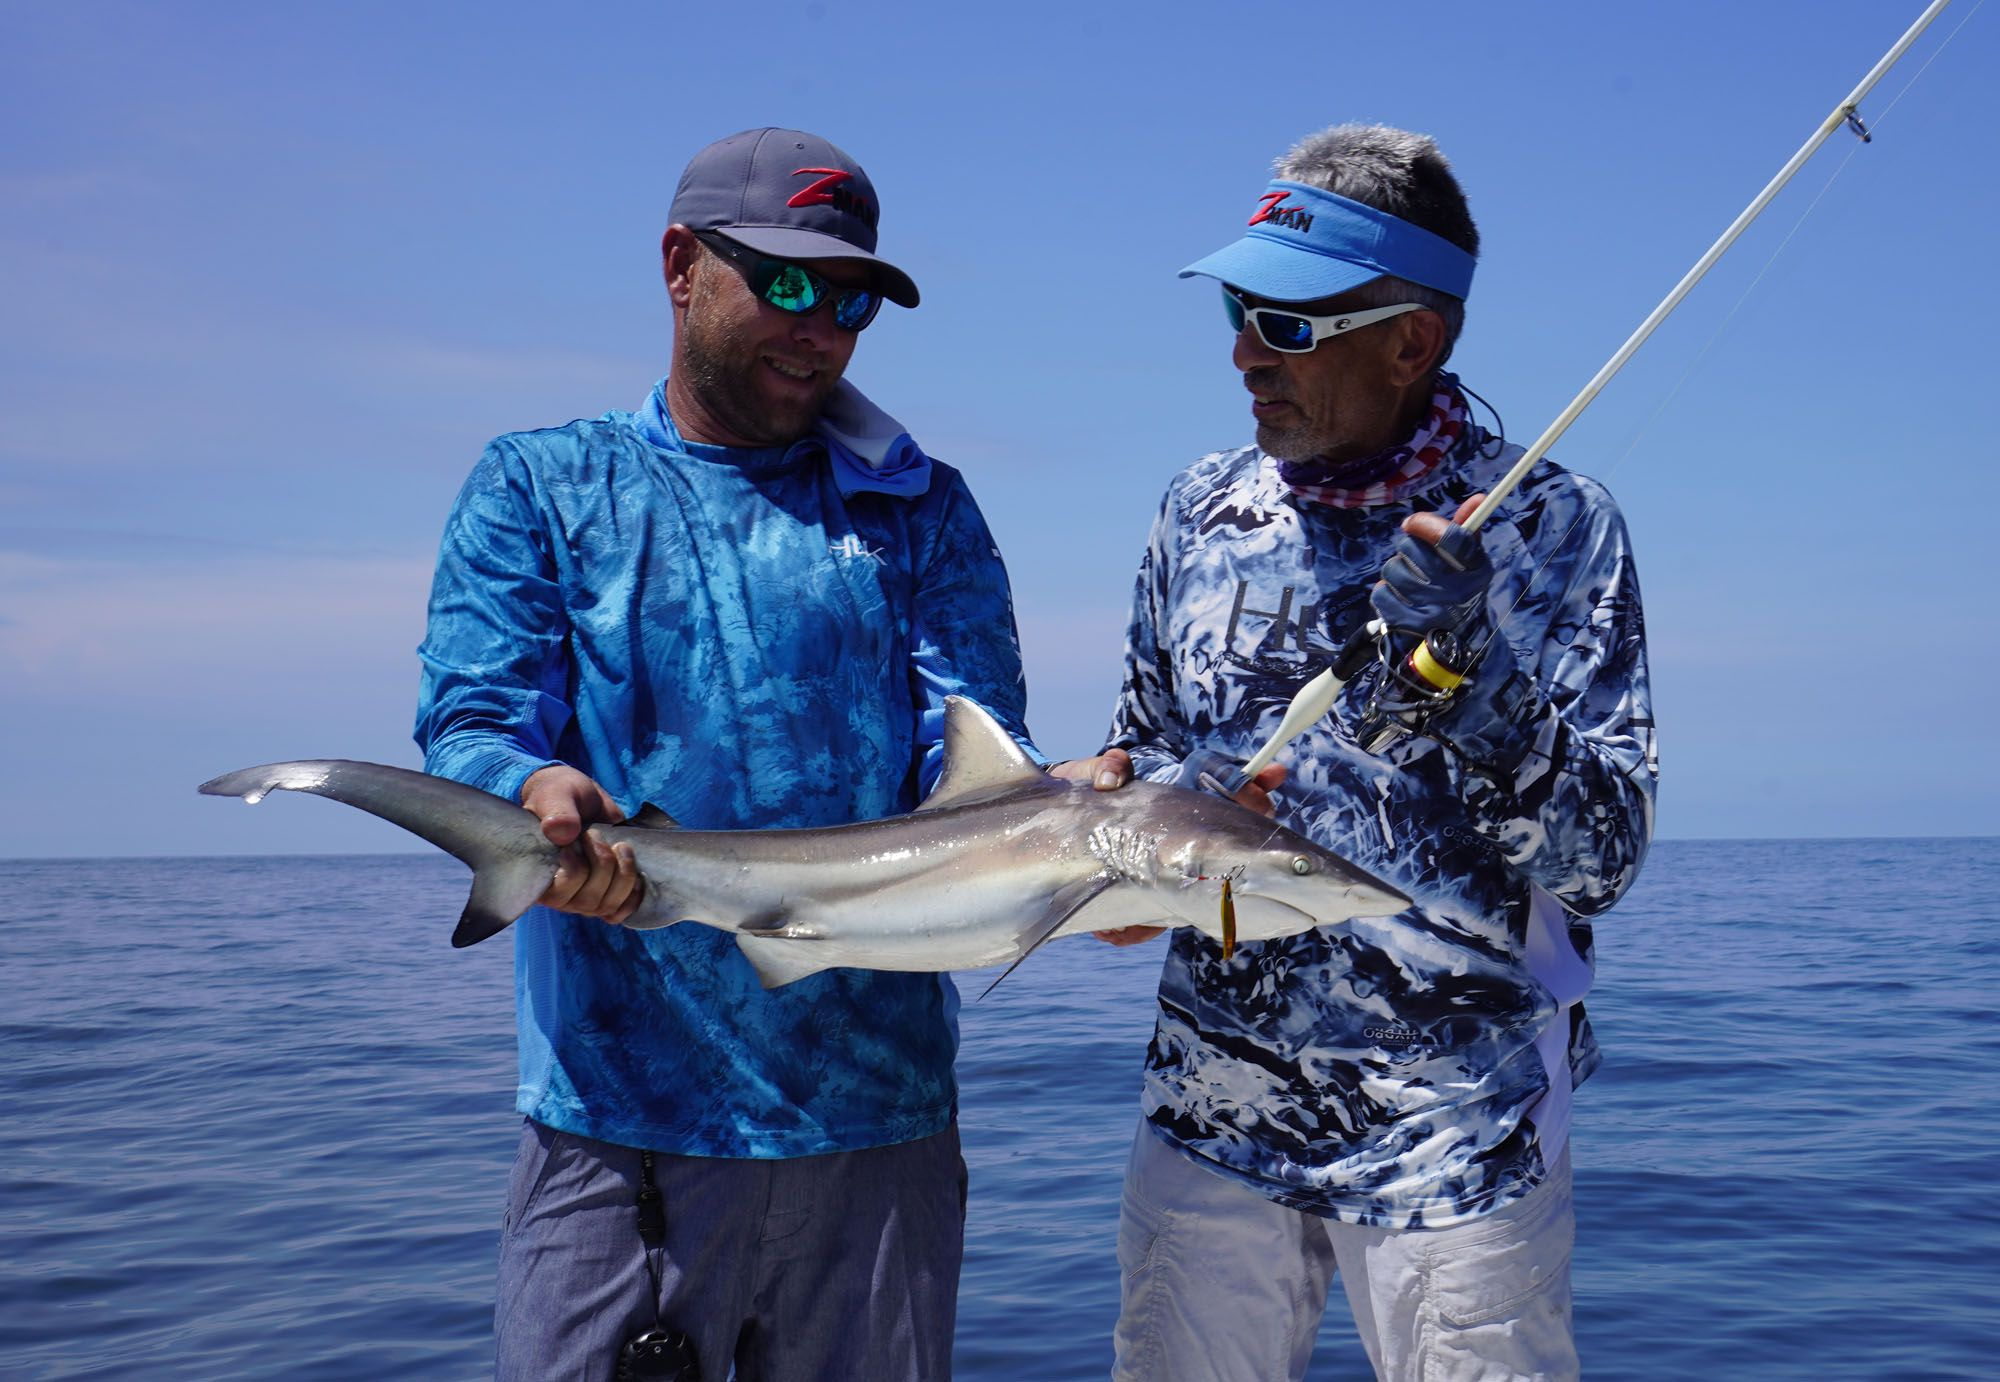 I just had to try a cast with a micro-jig, and the result was this blacktip that made a couple spectacular jumps and, on 12-pound braid, was a kick in the ass. Obiol is holding the fish.